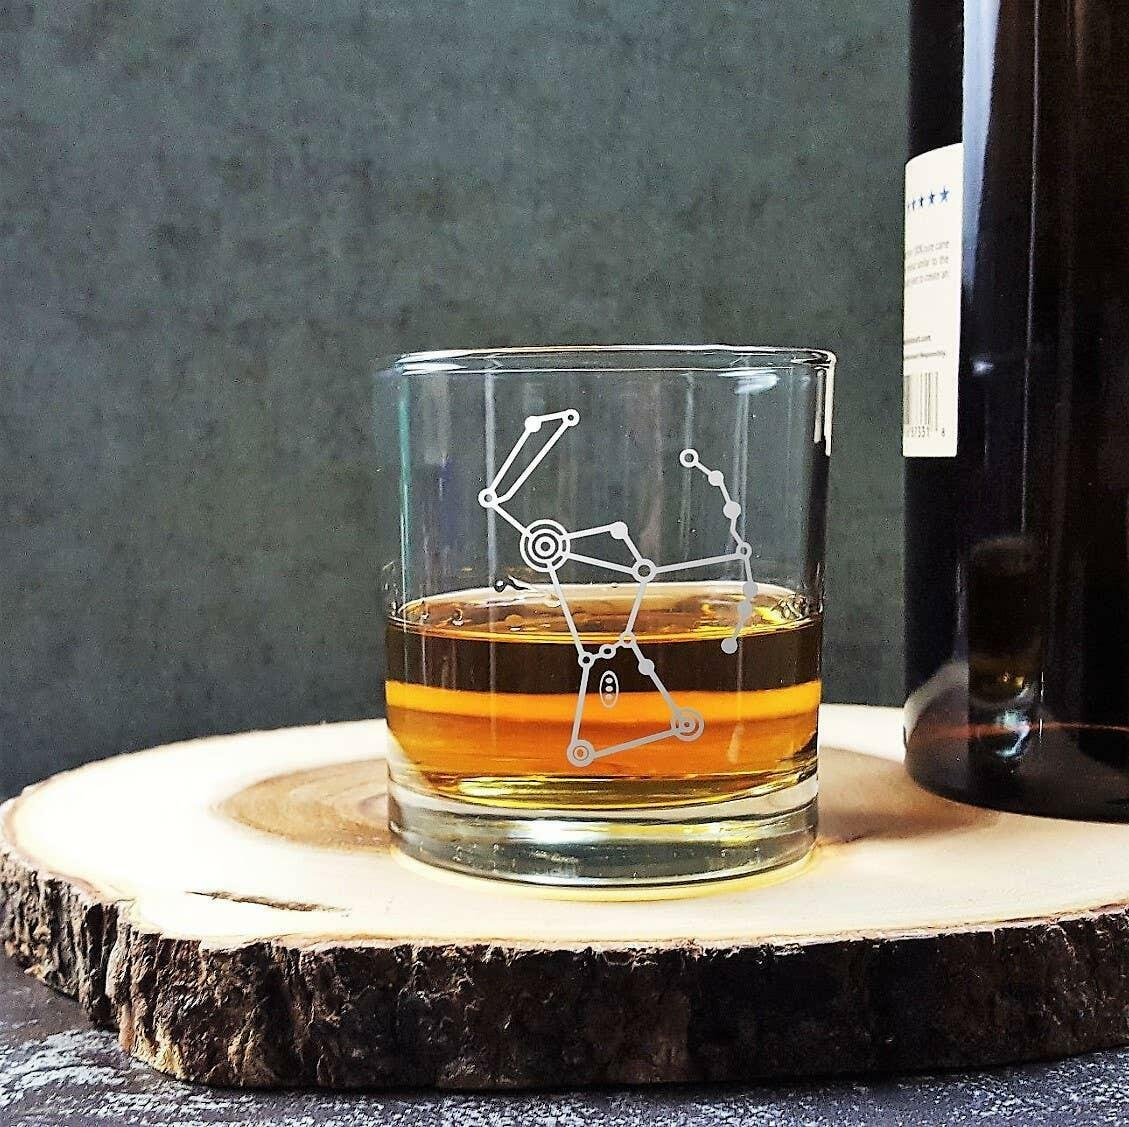 Orion Constellation Etched Whiskey Glass   Trada Marketplace